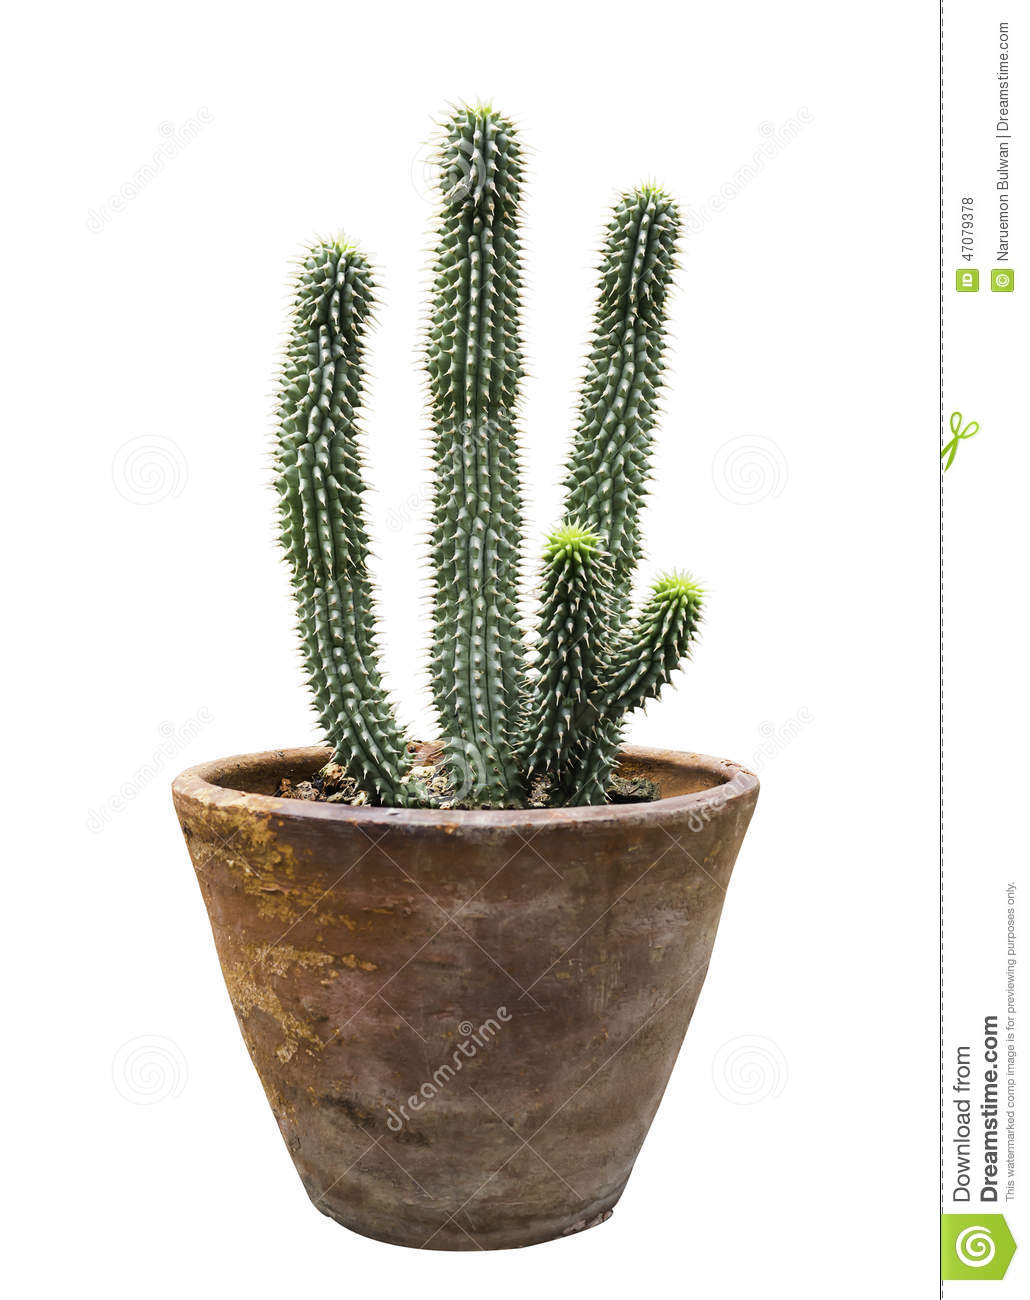 cactus in flower pot isolated stock photo image of tropical flowerpot 47079378. Black Bedroom Furniture Sets. Home Design Ideas